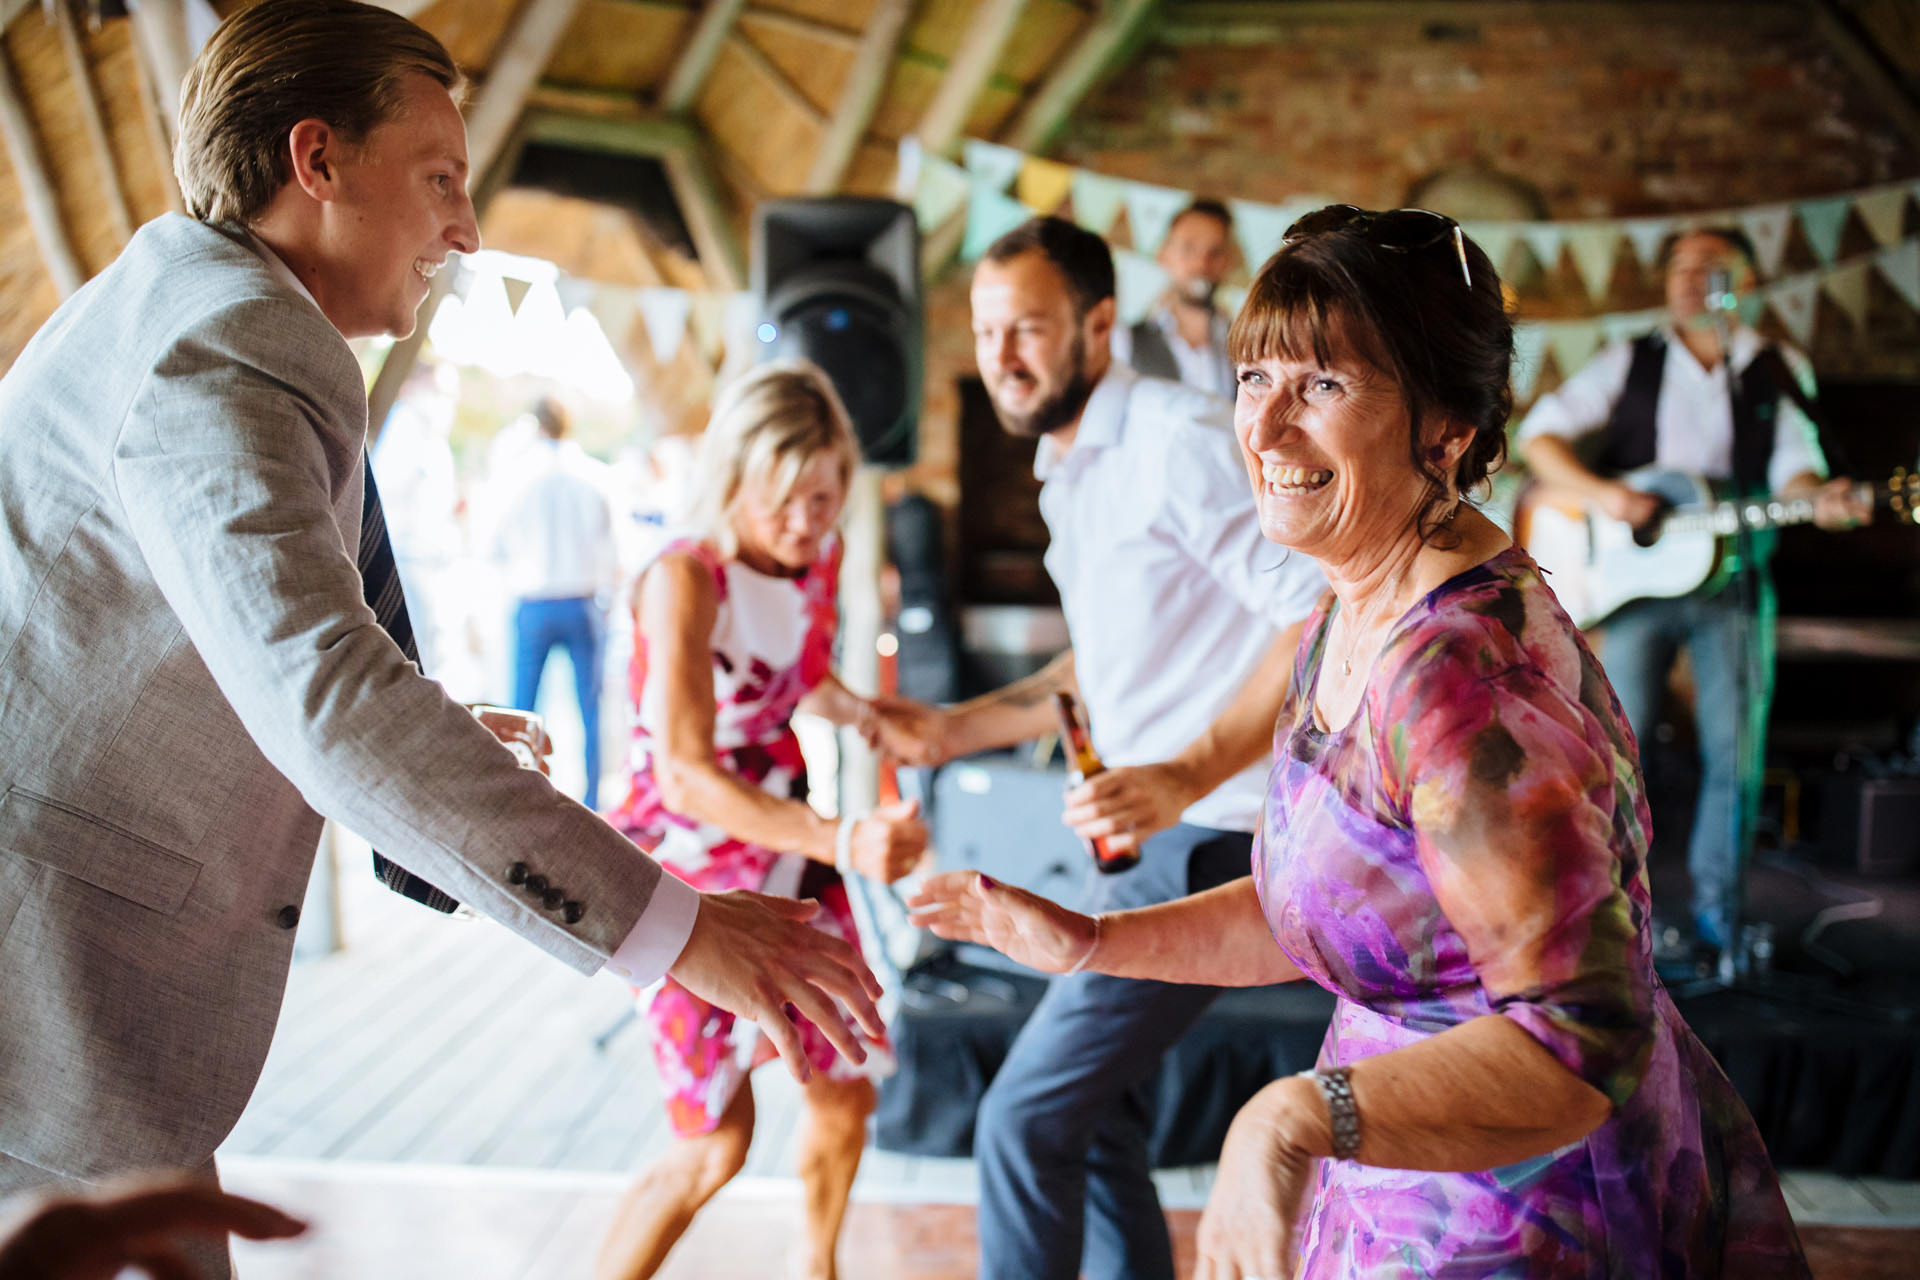 brides mum wearing purple floral dress and sunglasses dancing and laughing